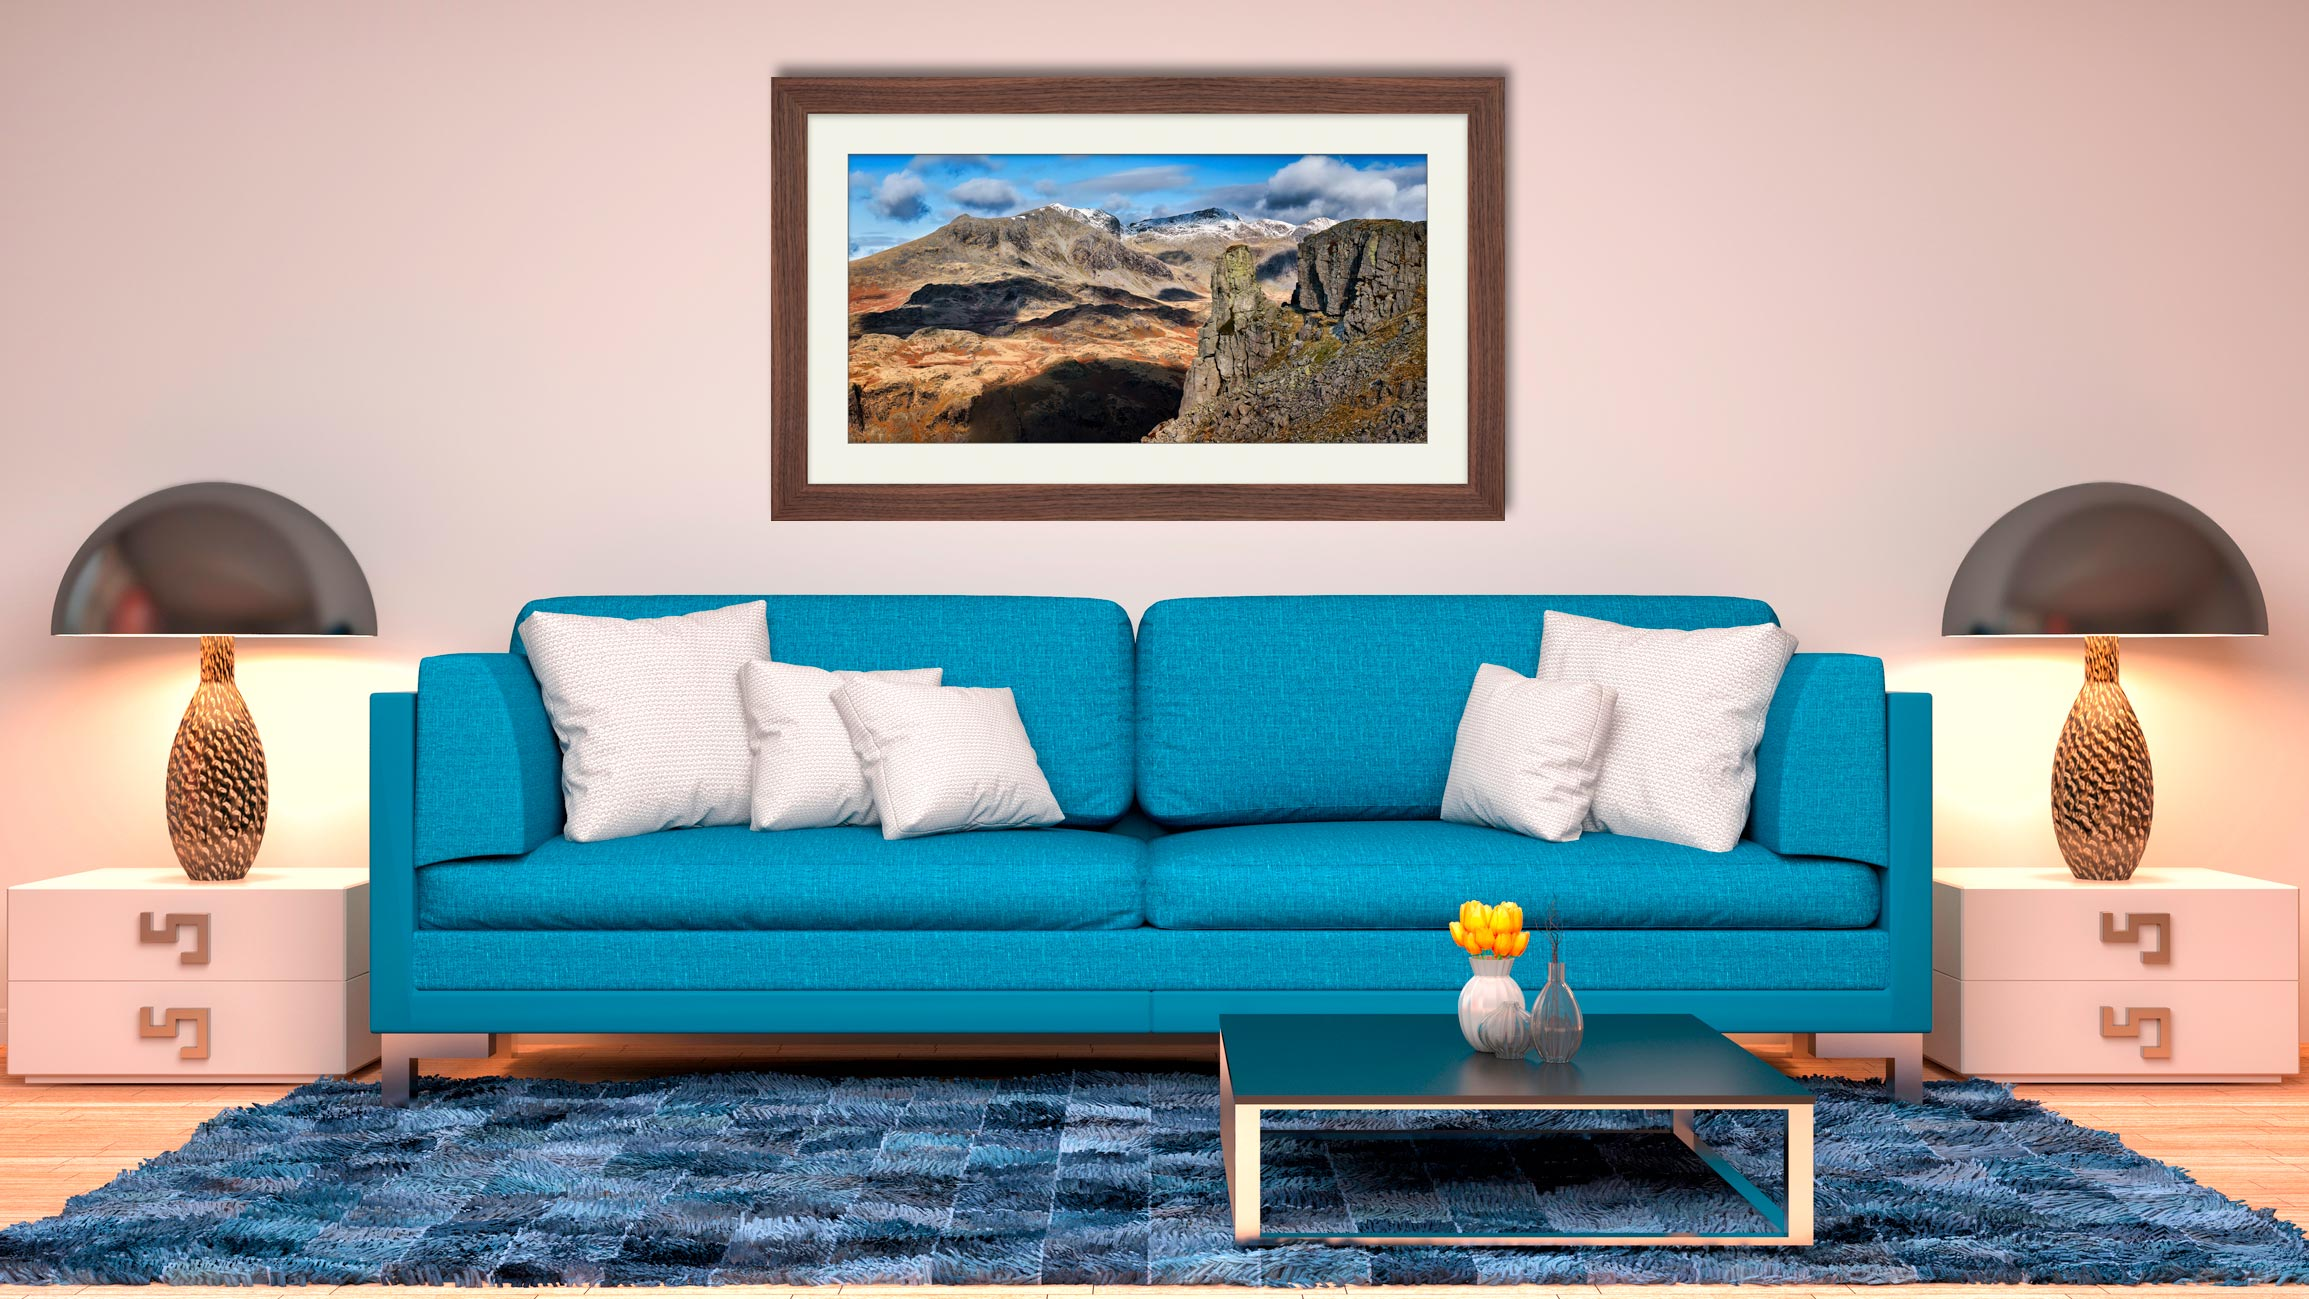 Eskdale Needle and Scafell Range - Framed Print with Mount on Wall